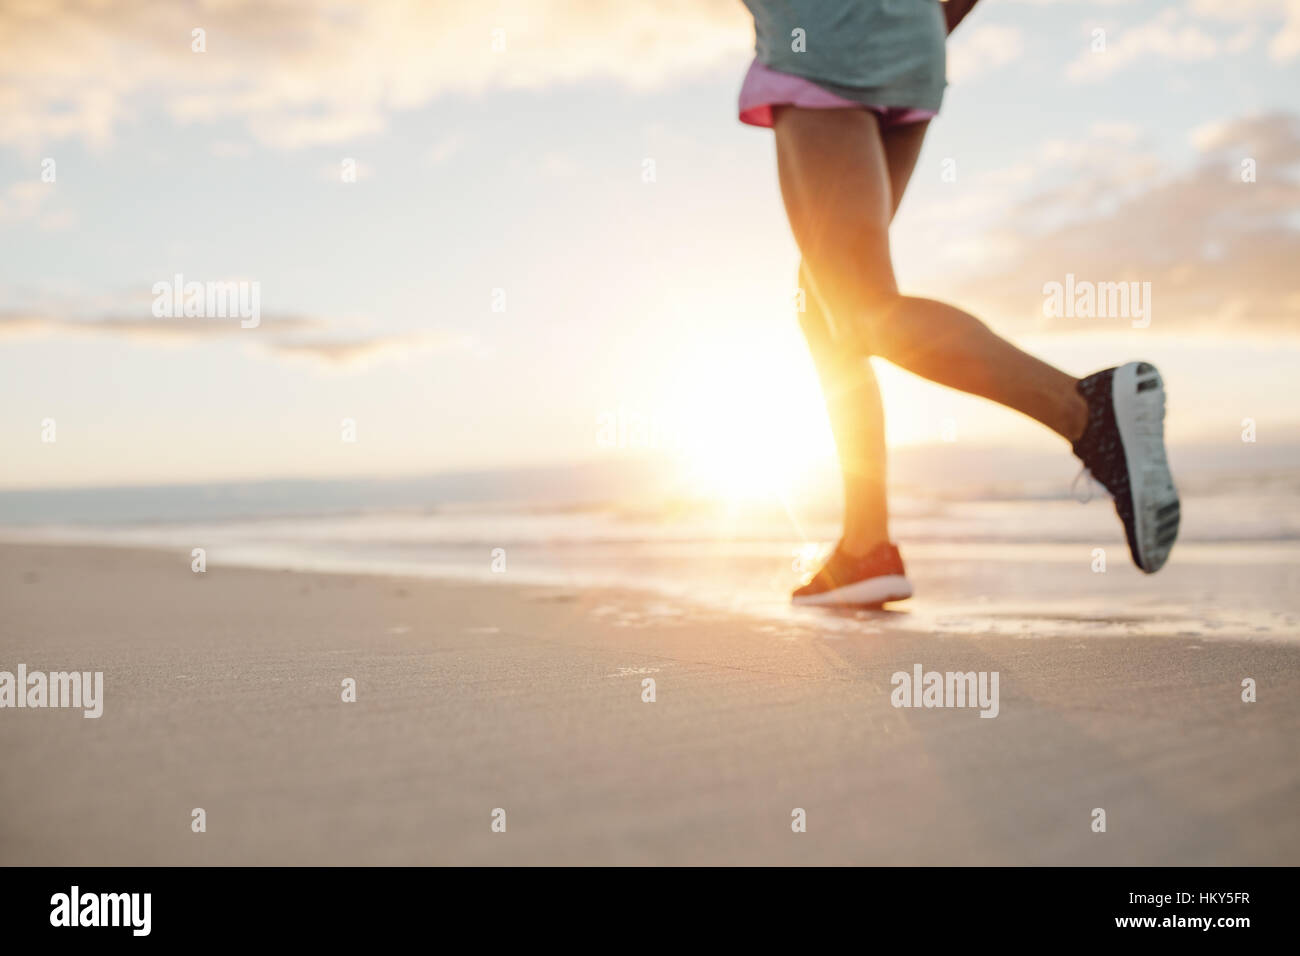 Feet of young woman jogging on the beach. Fitness female on morning run at sea shore. - Stock Image